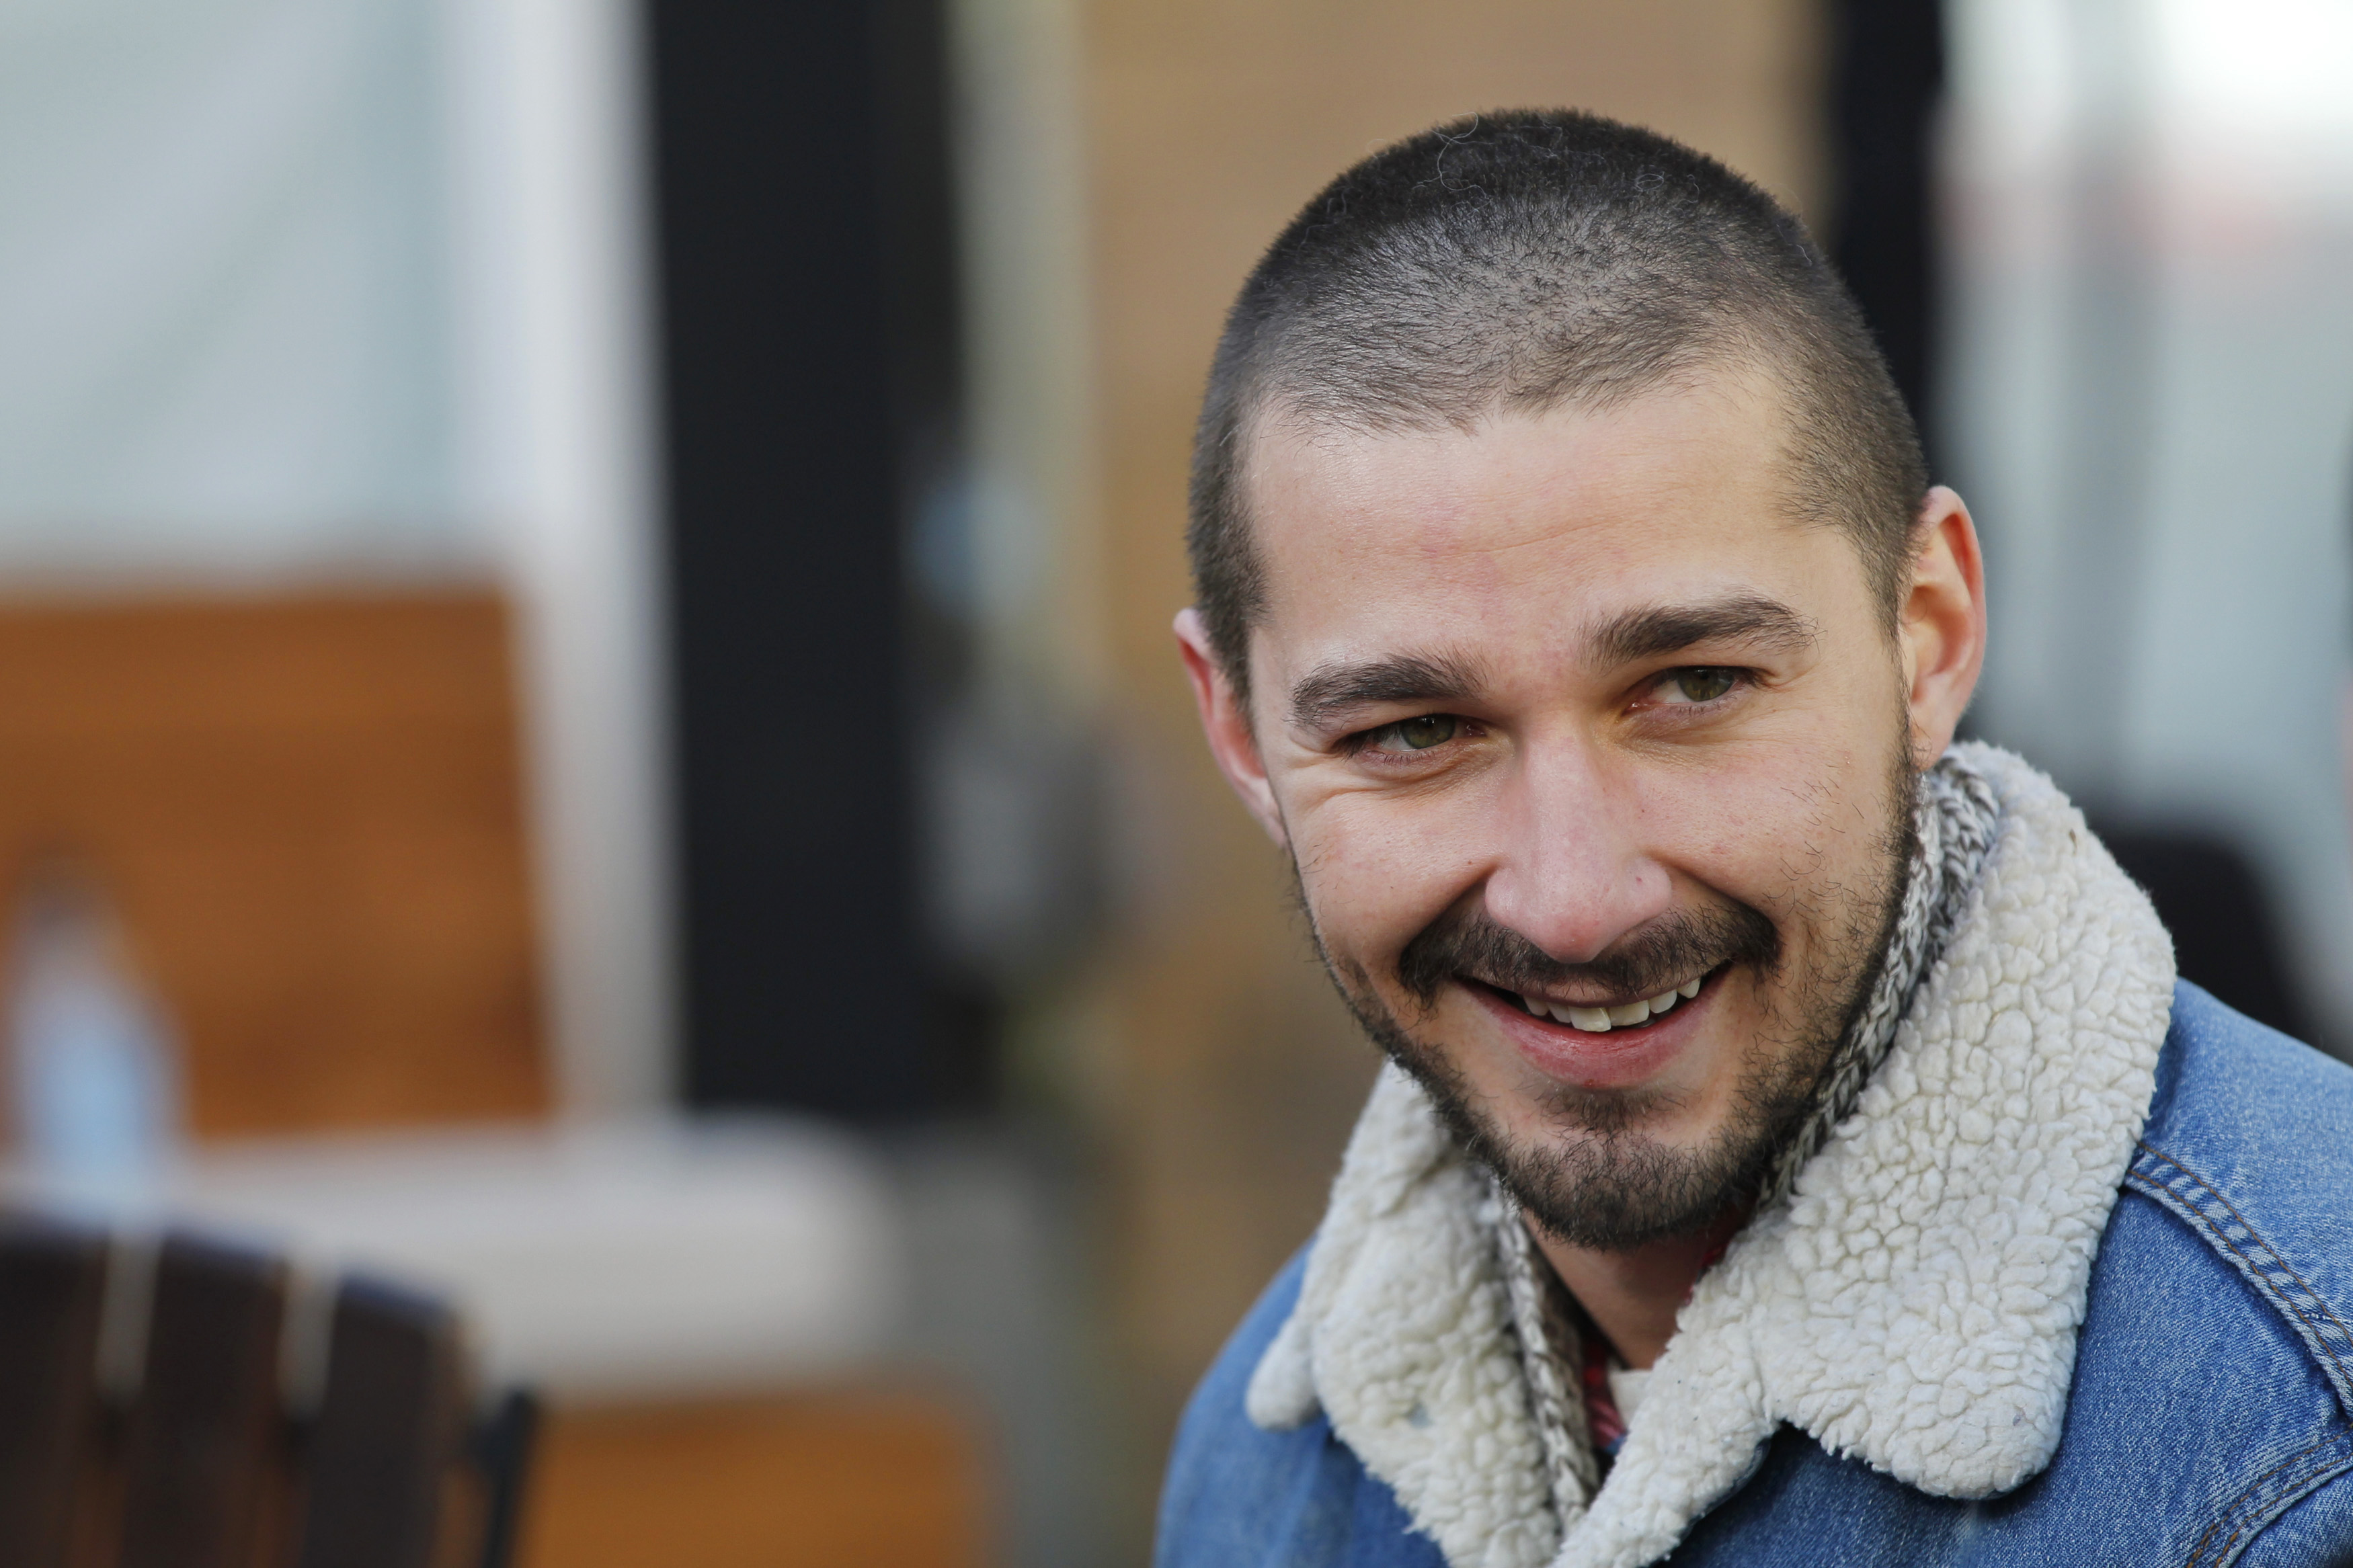 is shia labeouf dating Shia labeouf and his longtime girlfriend, mia goth, are engaged the pair, who have been dating on and off since they met on the set of.